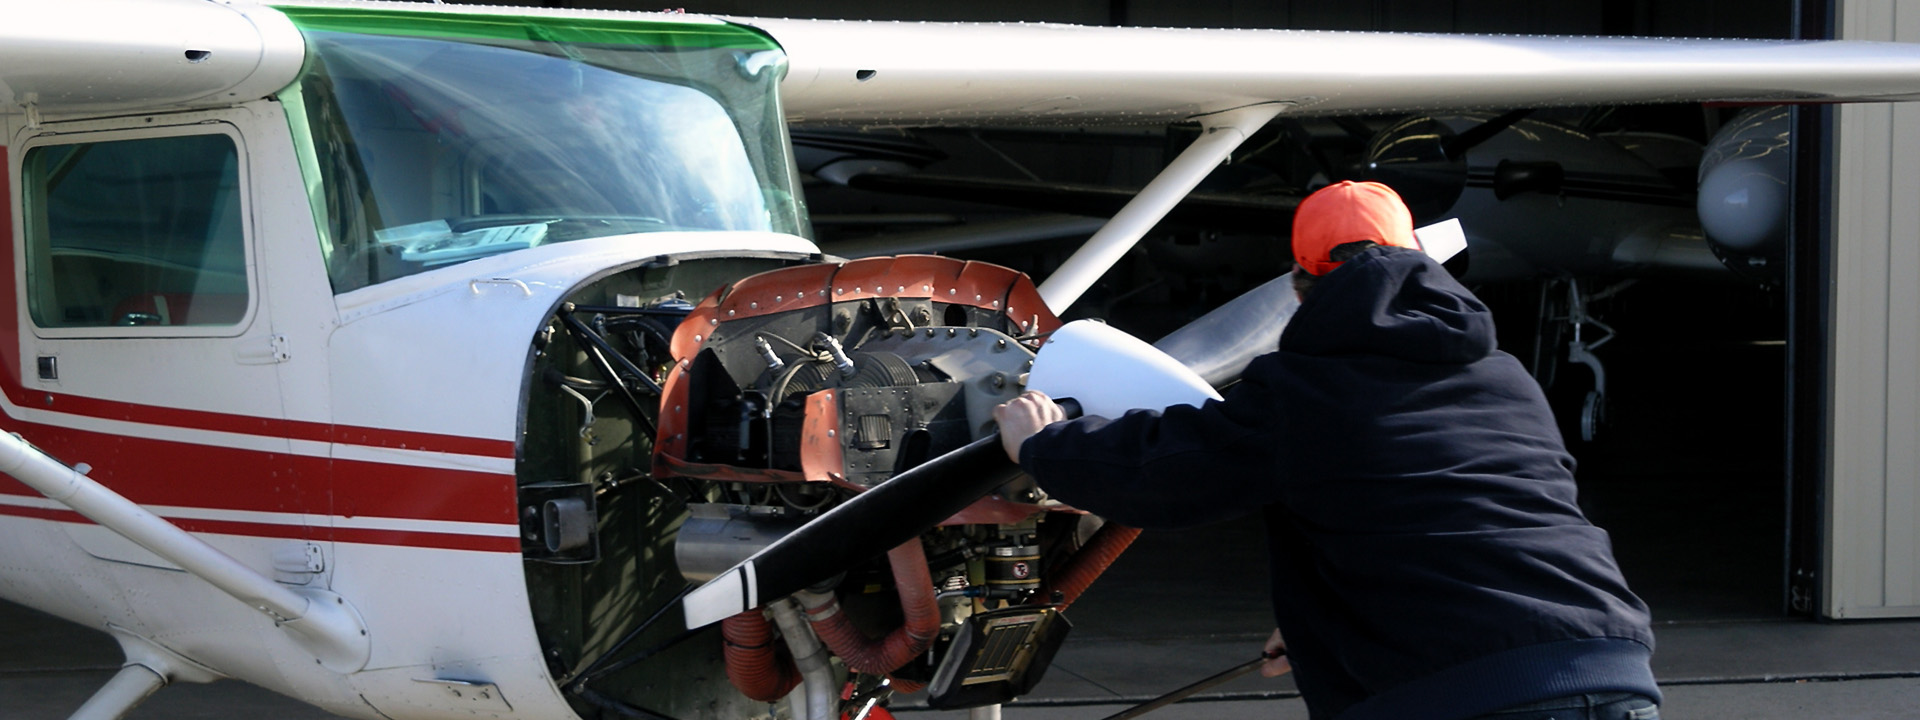 Aircraft Airframe Mechanics